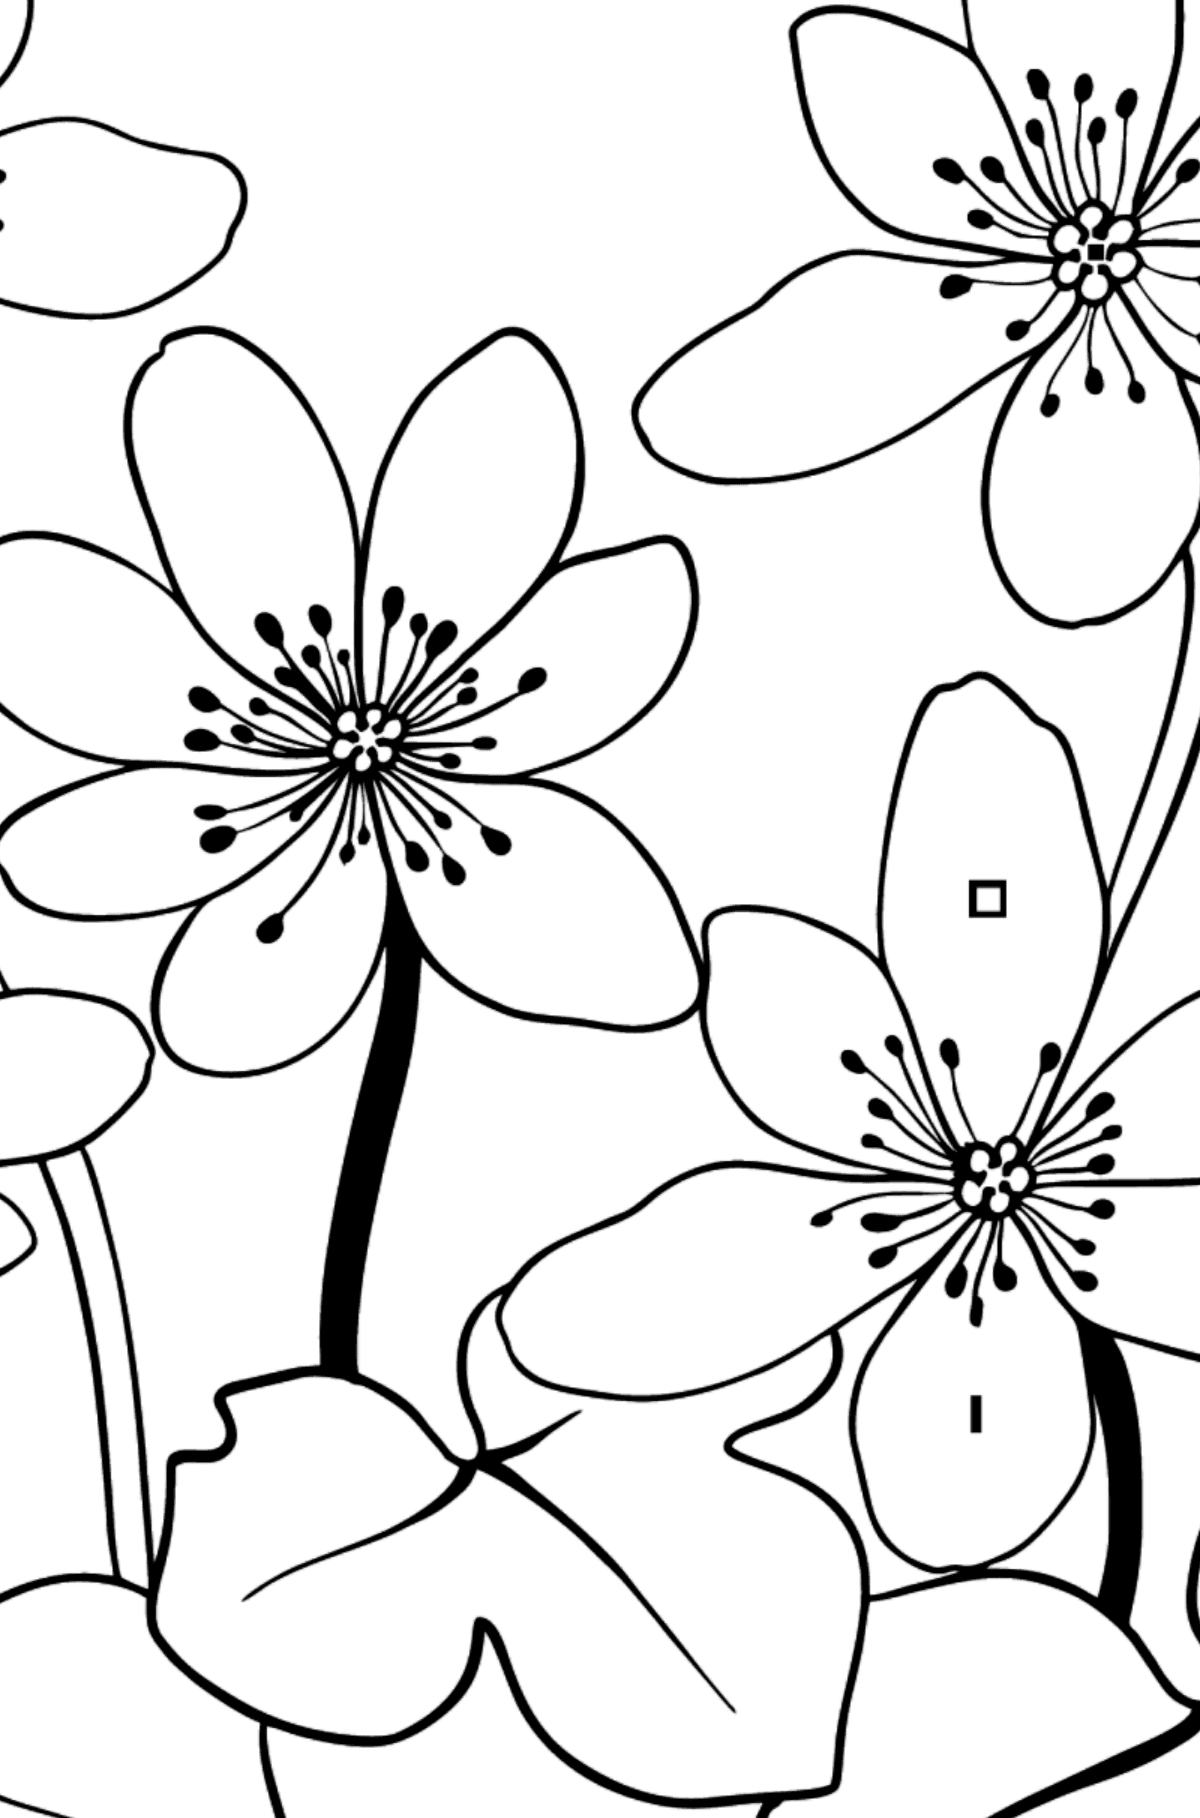 Flower Coloring Page - A Yellow and Orange Hepatica - Coloring by Symbols and Geometric Shapes for Kids